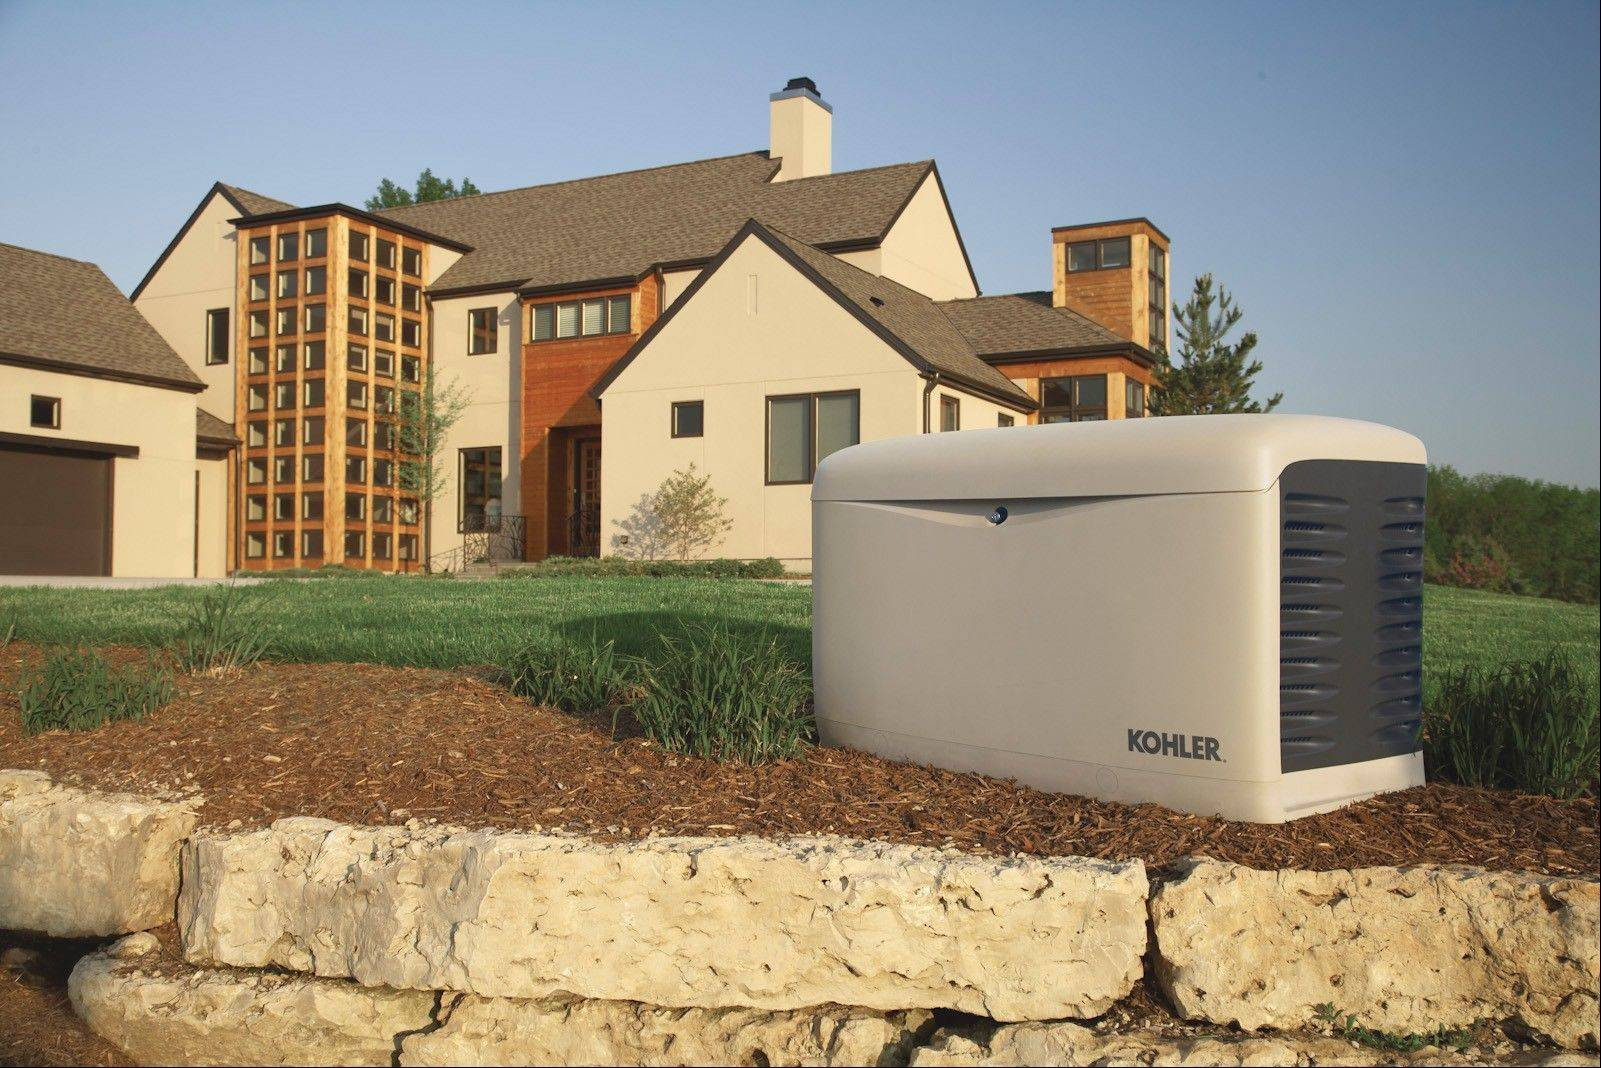 A standby generator is a backup electrical power system installed directly to a home. It needs to be professionally installed by licensed contractors.